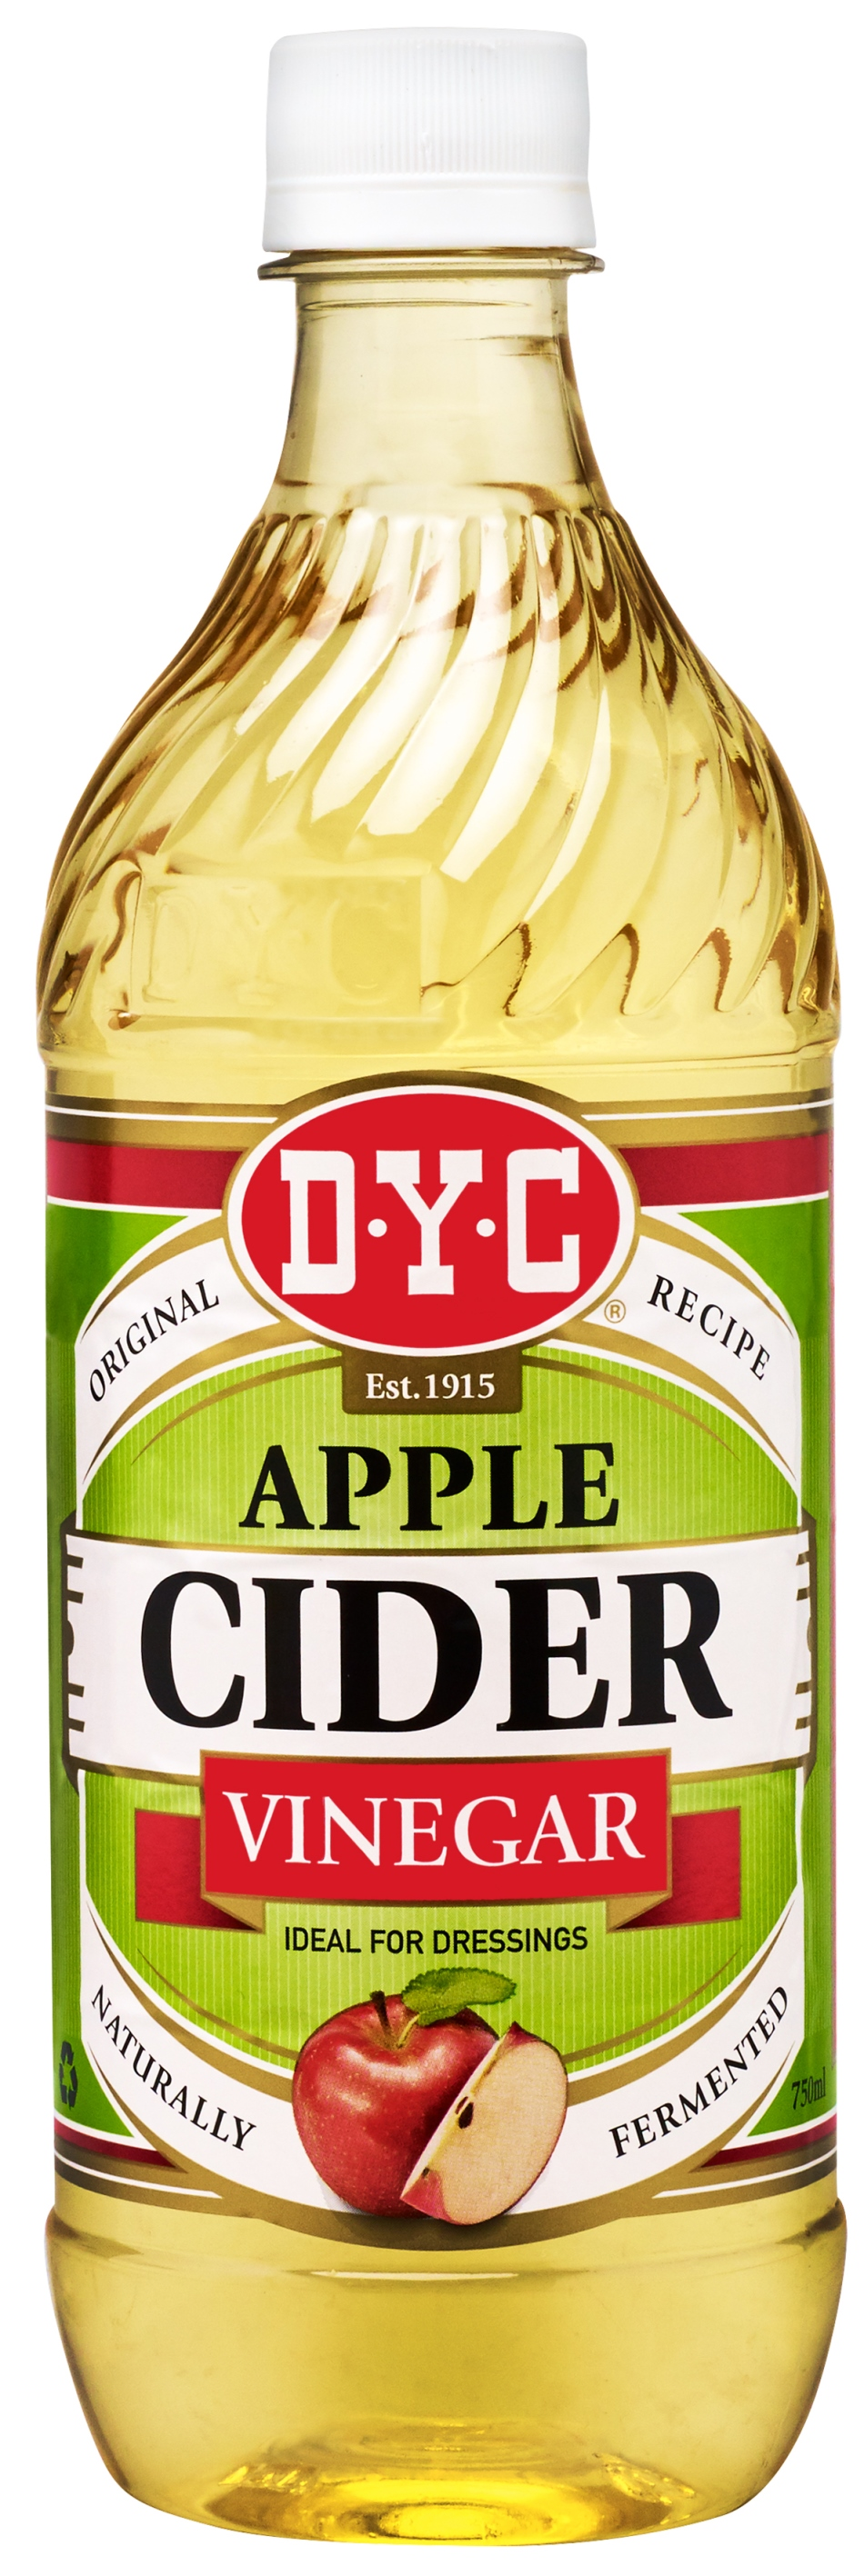 DYC Apple Cider Vinegar 750ml